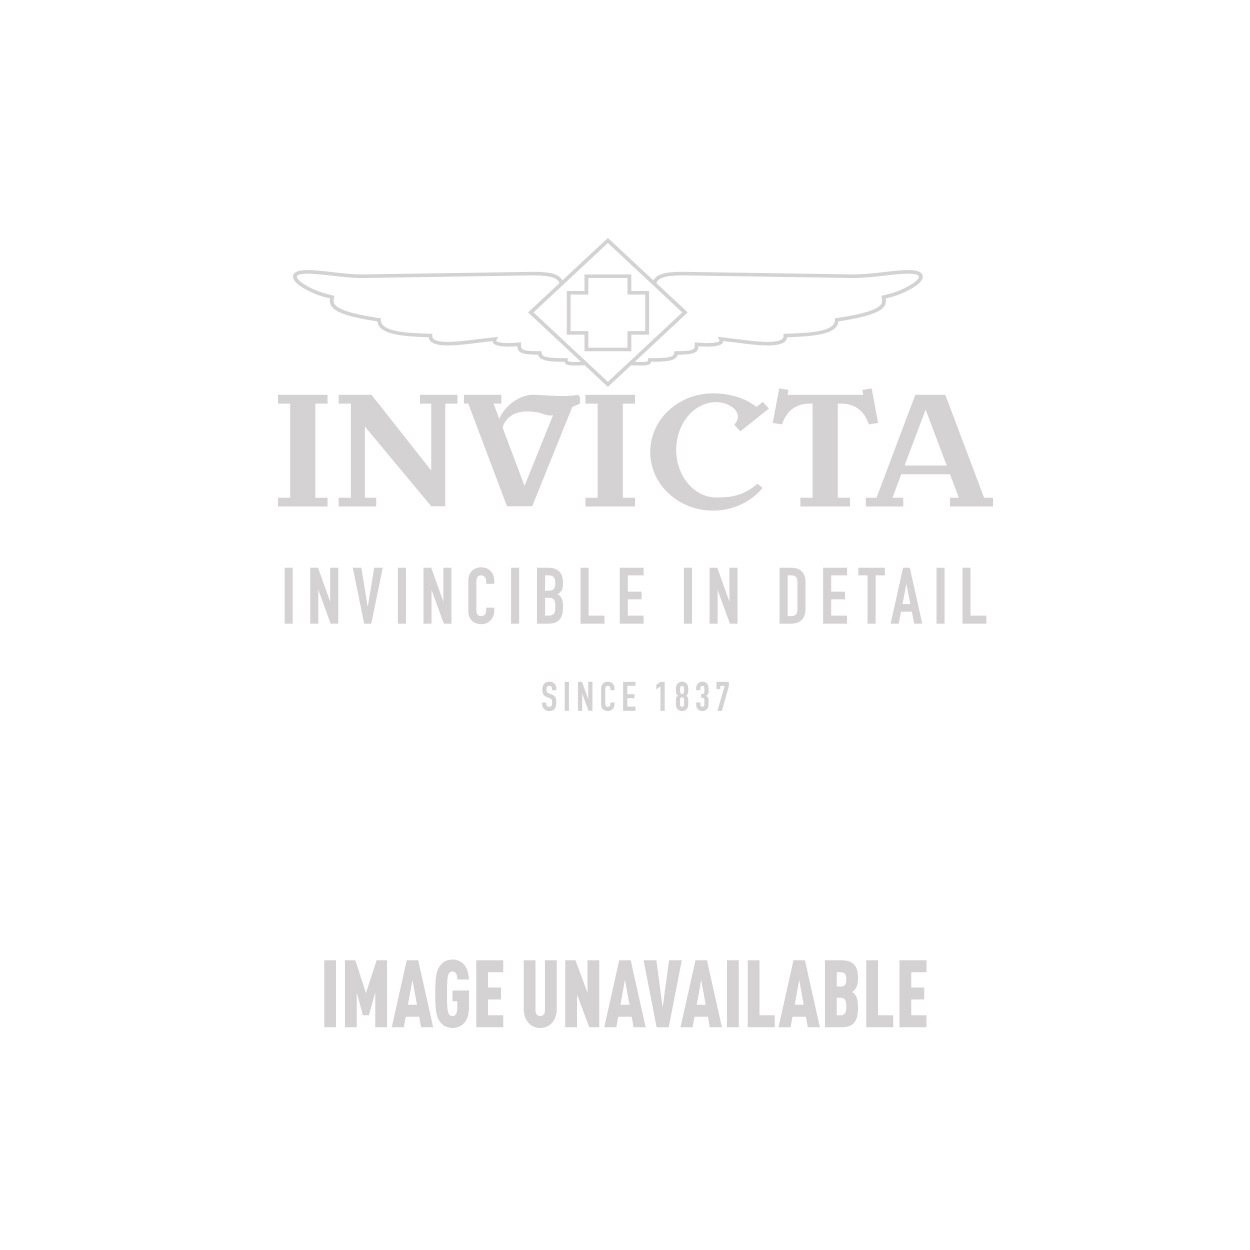 Invicta Specialty Swiss Movement Quartz Watch - Gold case with Gold tone Stainless Steel band - Model 15119